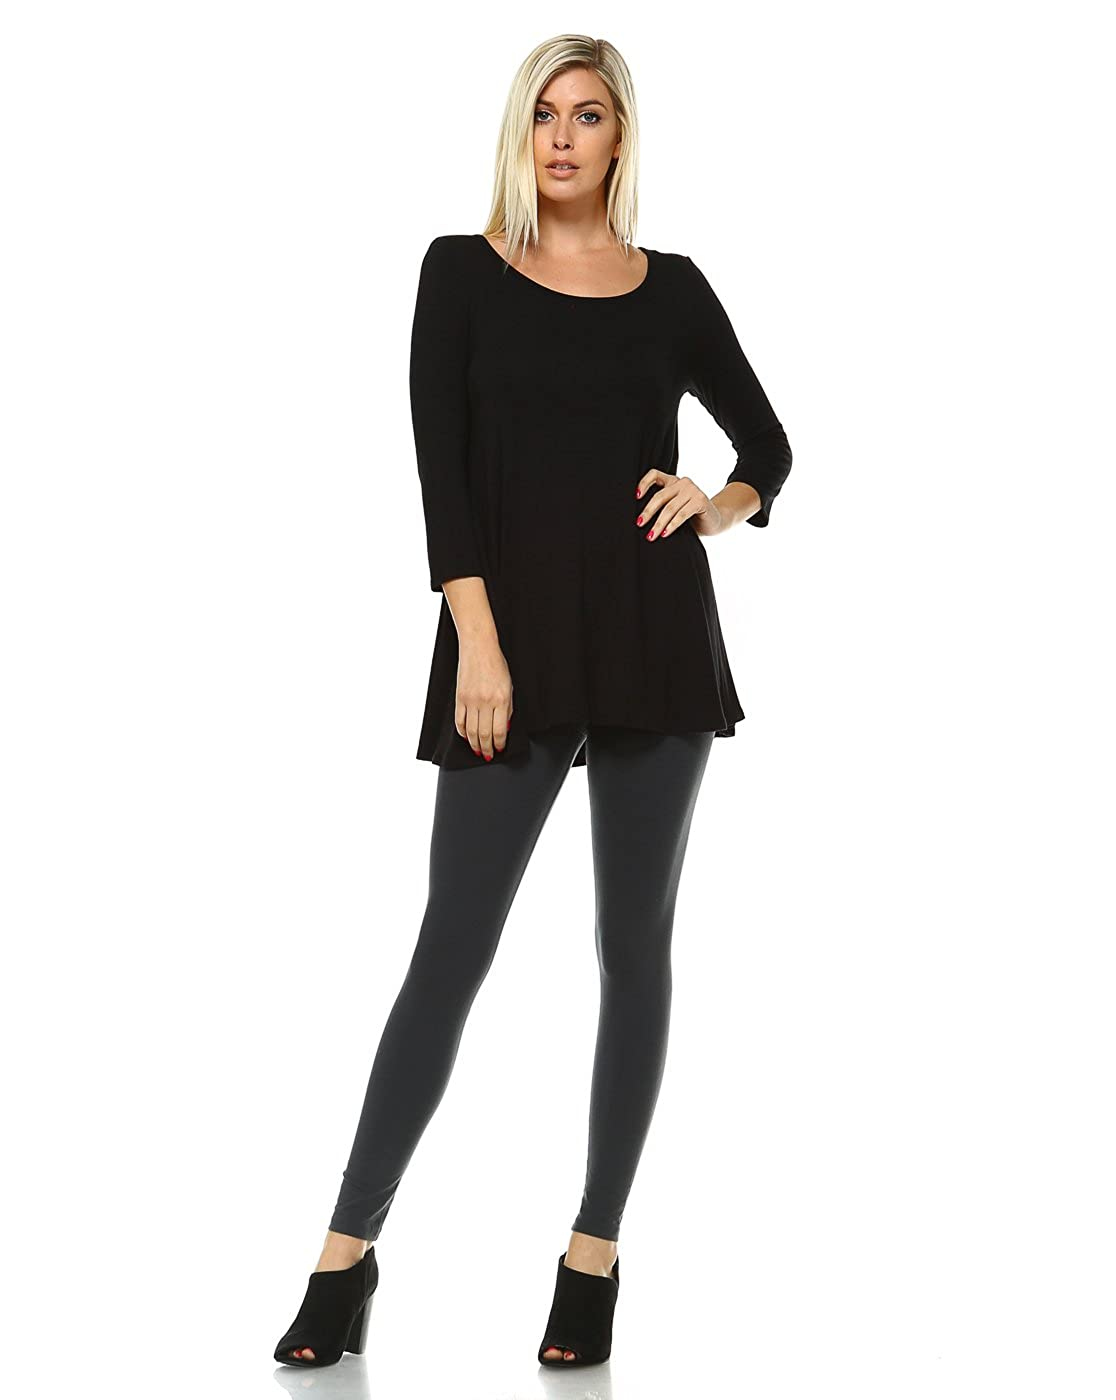 3572b359e6 Tunic Tops For Leggings For Women 3 4 Sleeve Shirts For Women Long Made In  USA Plus Size 3X Black at Amazon Women s Clothing store